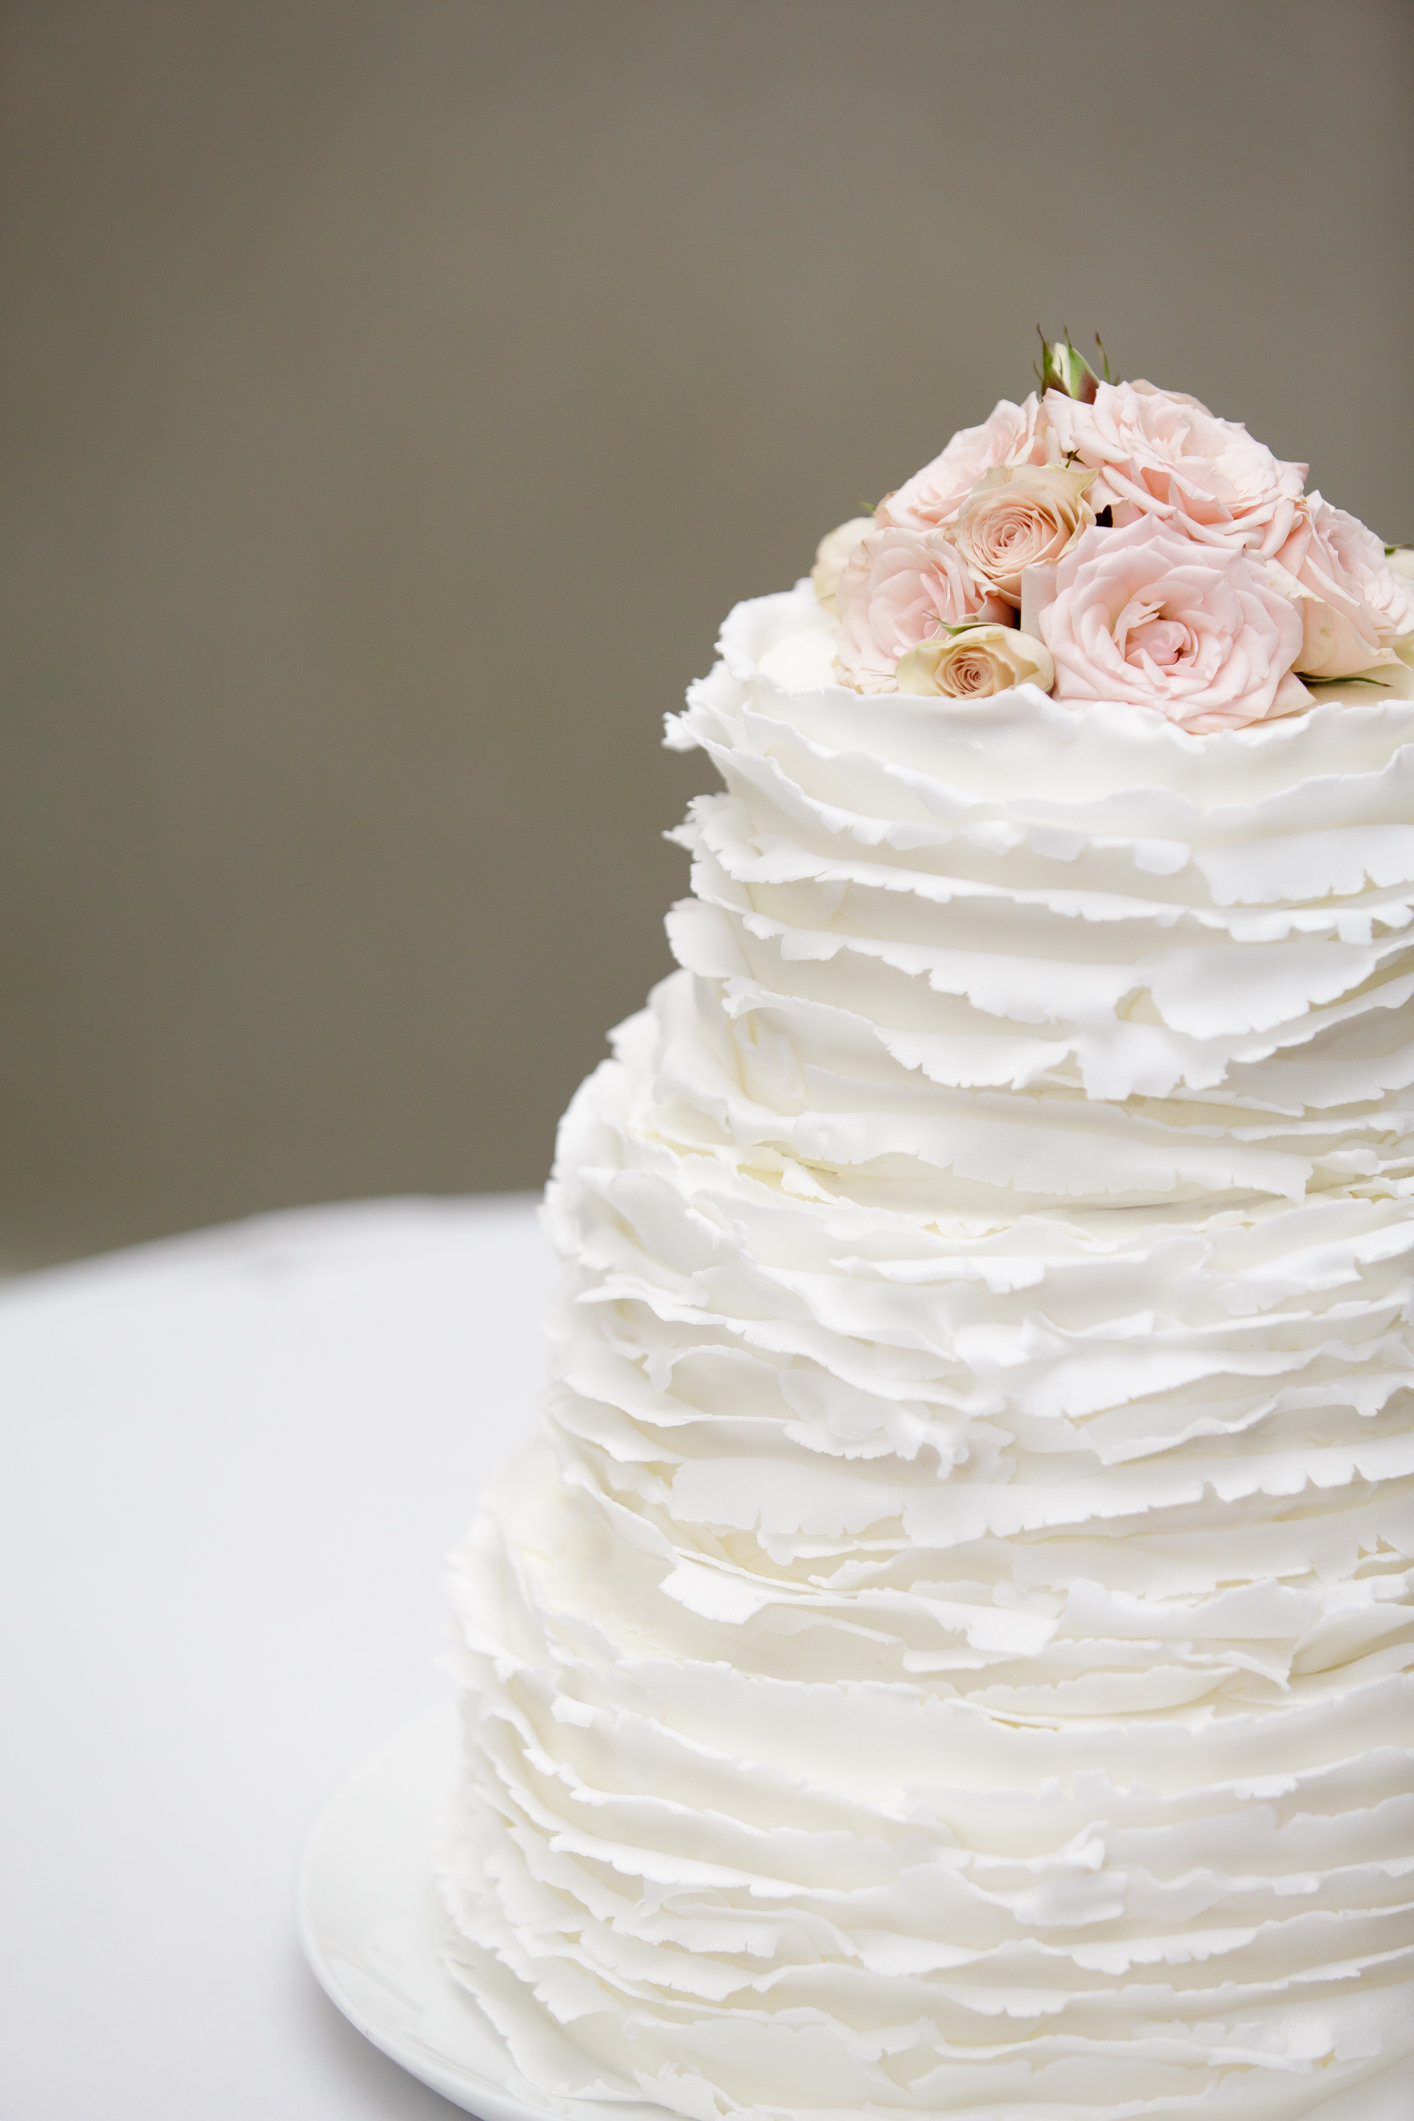 Hilton Sandestin Baker Creates Beach inspired Destin FL Wedding Cakes Yasha features three traditional wedding cakes taking a more simplistic  approach giving the wedding guests the chance to indulge in classic cake  flavors